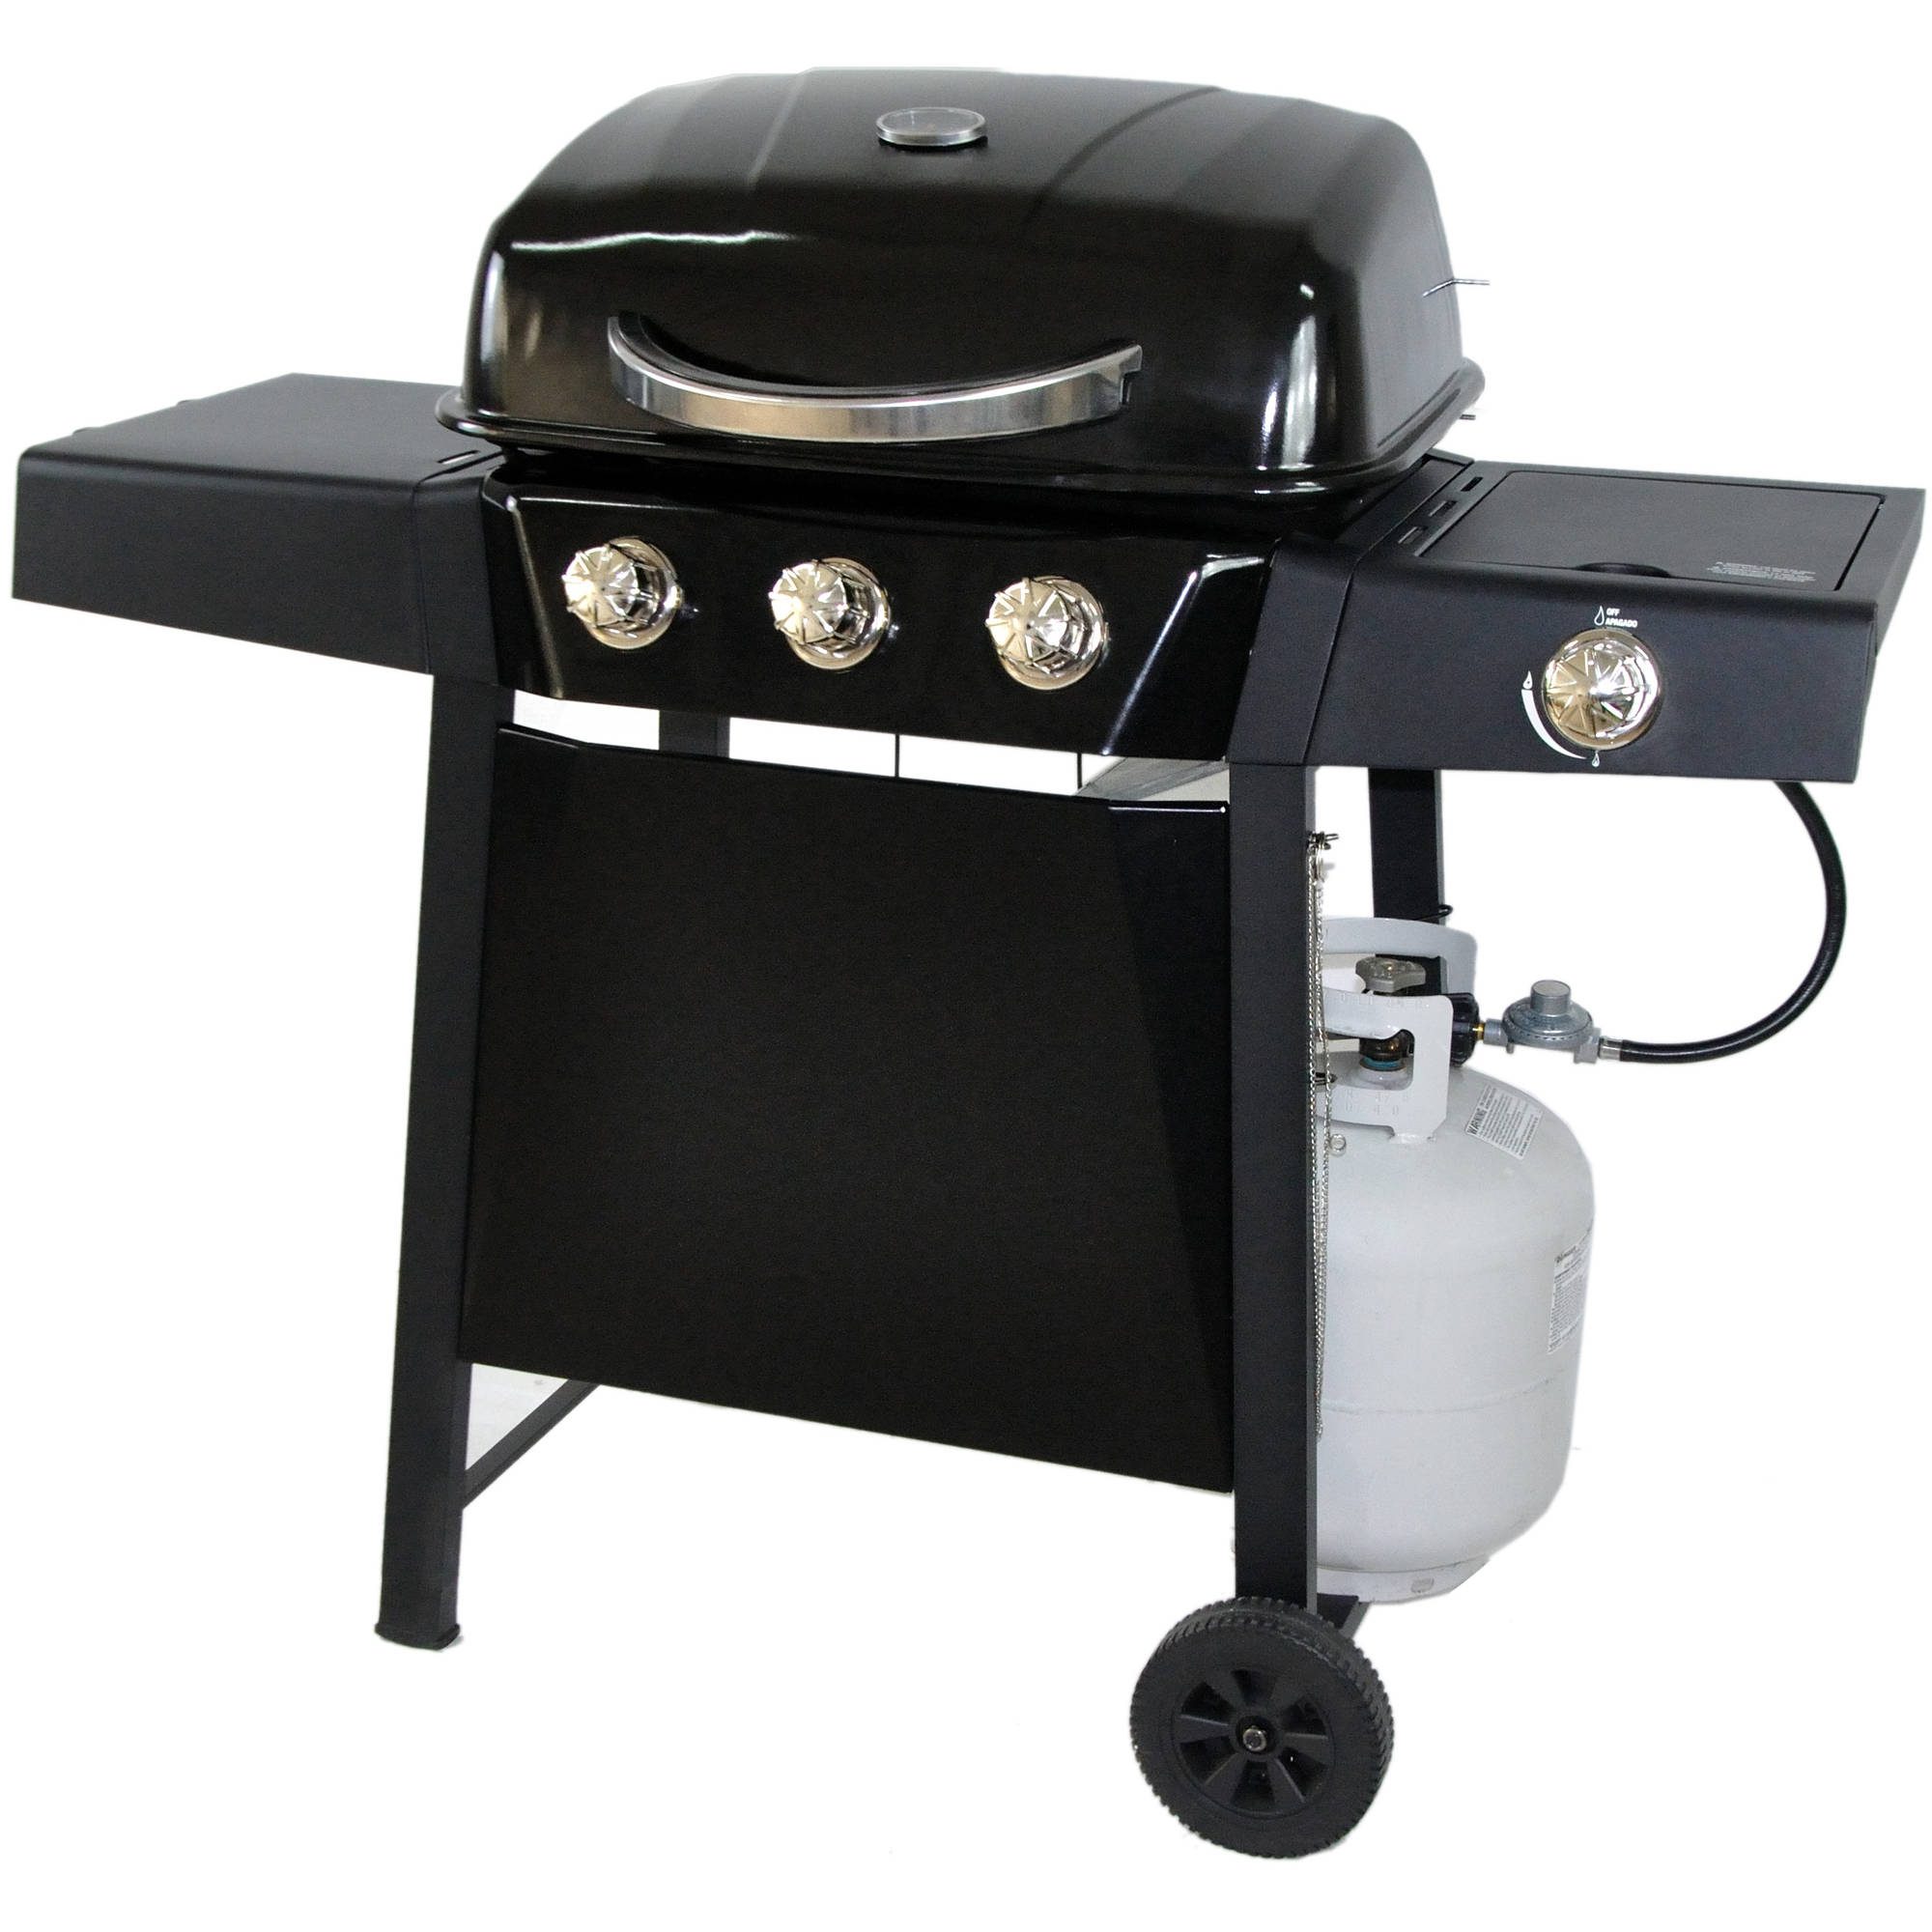 RevoAce 3-Burner LP Gas Grill with Side Burner, Black